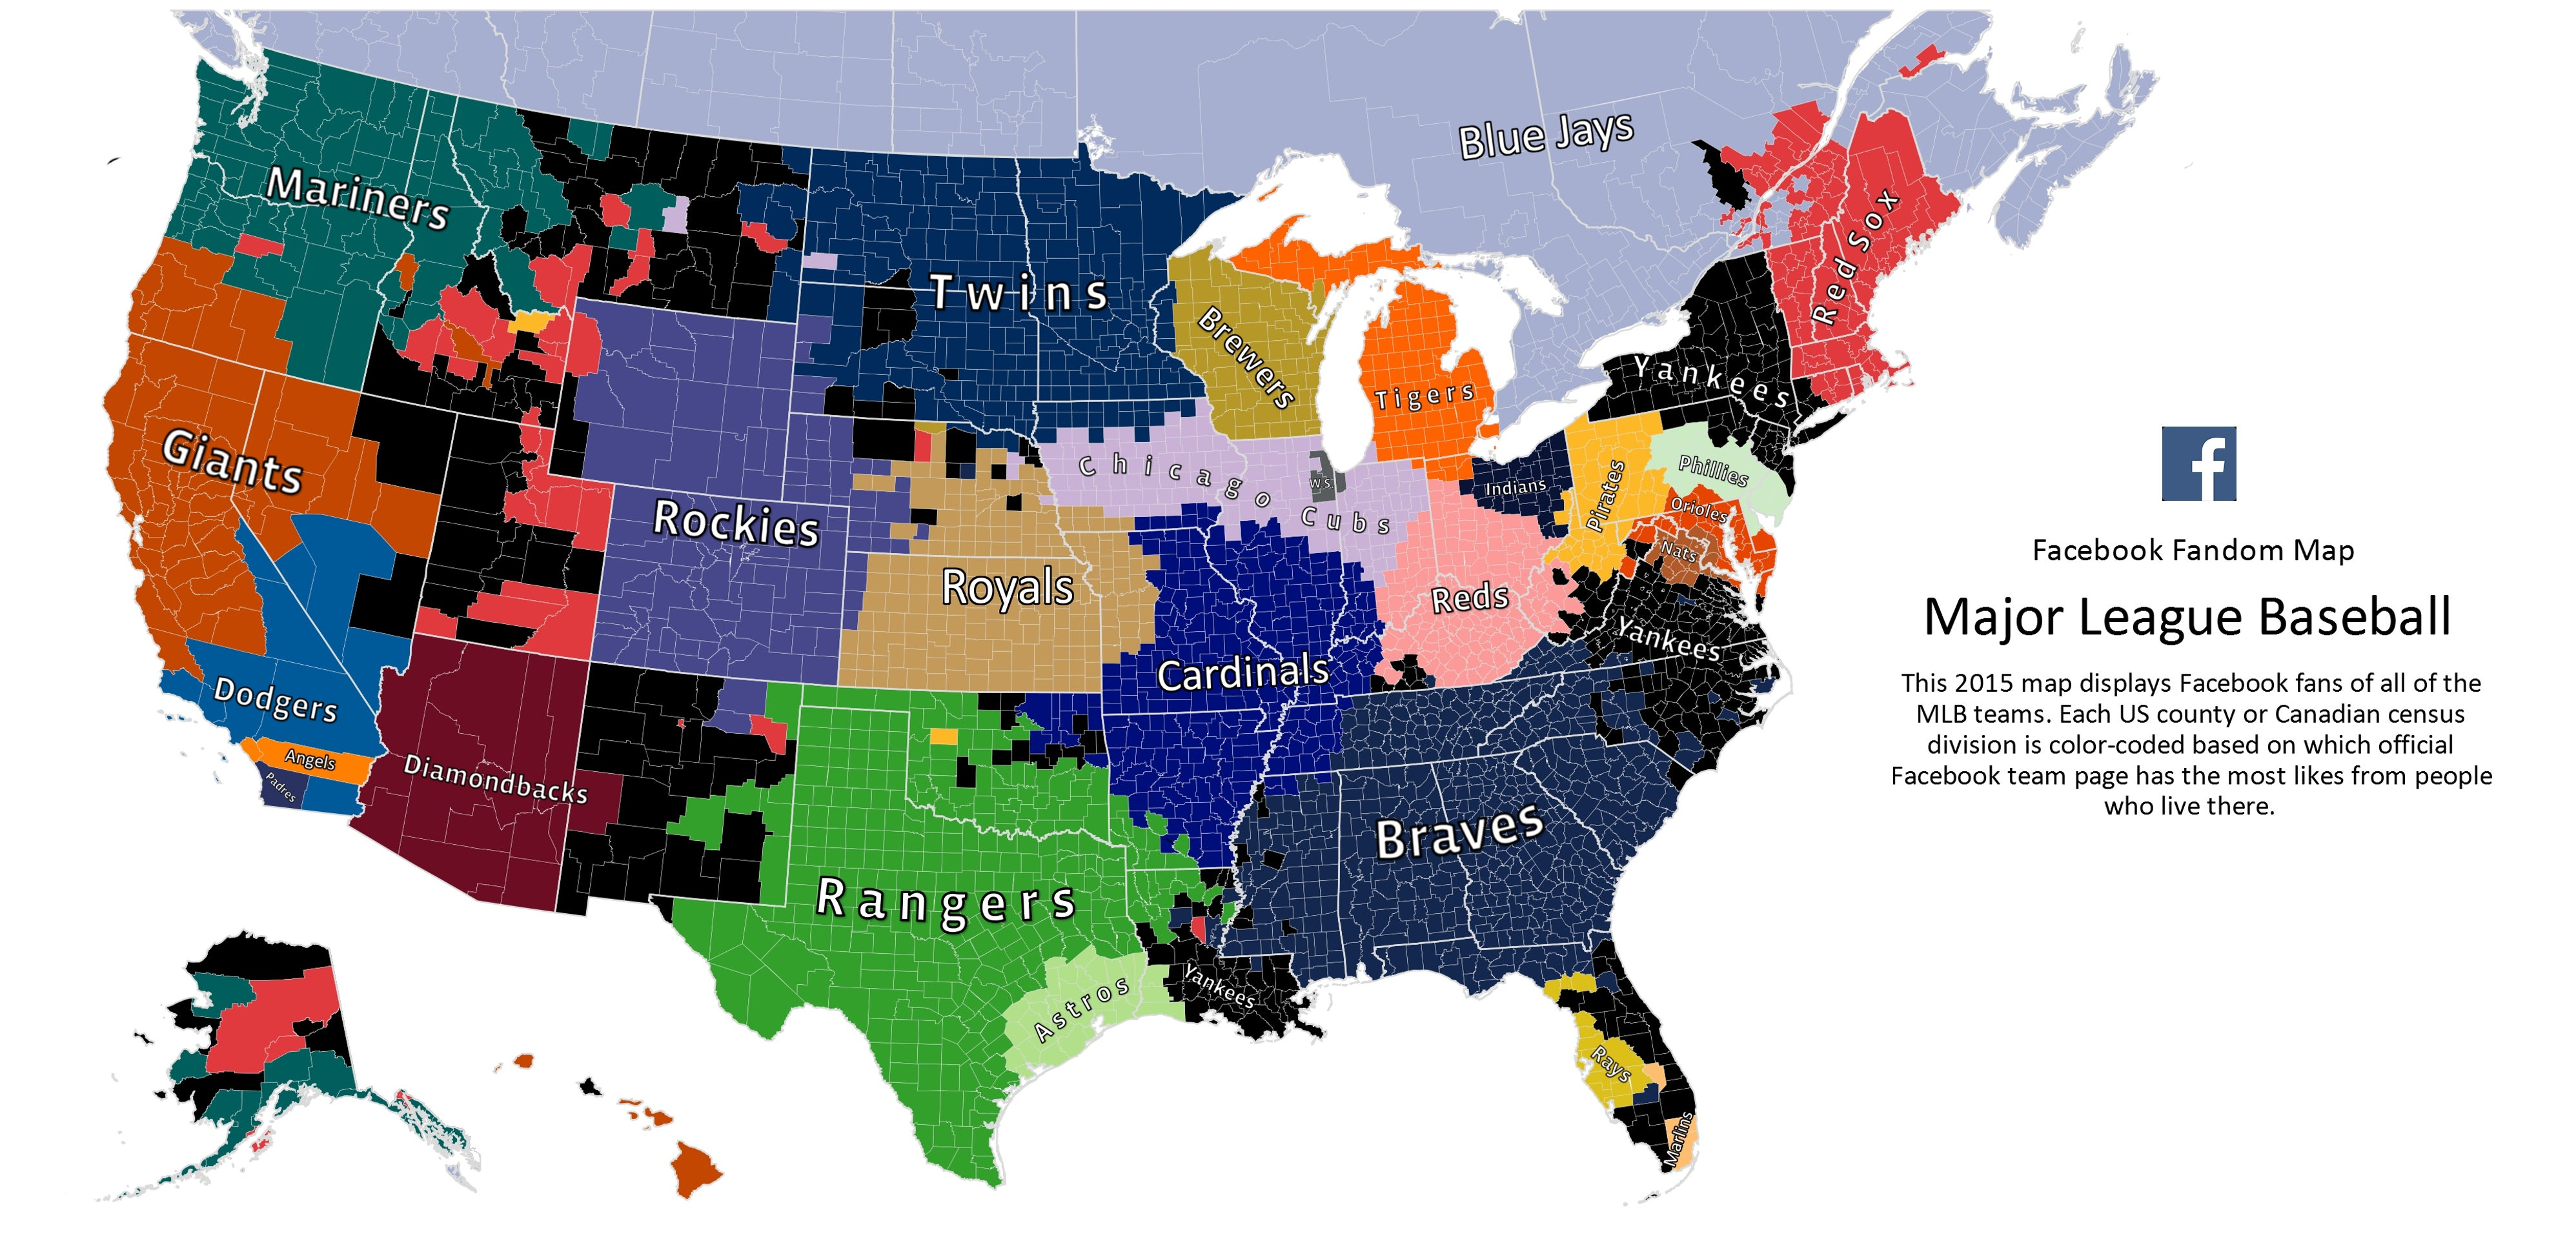 Worksheet. Heres Facebooks 2015 MLB Fandom Map